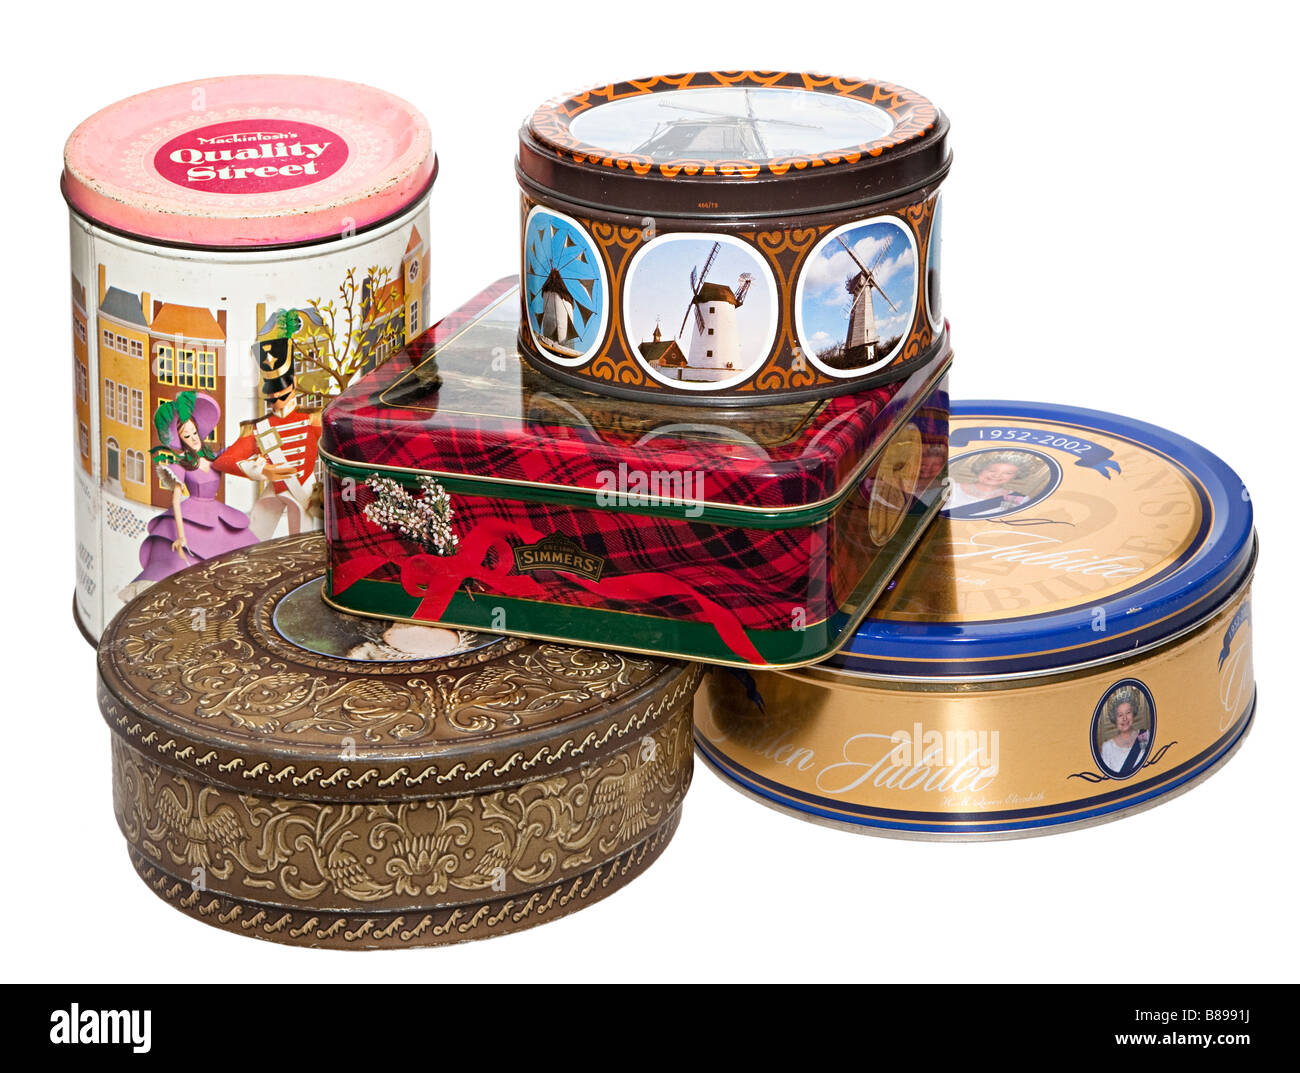 Collection of old metal biscuit and sweet tins UK - Stock Image